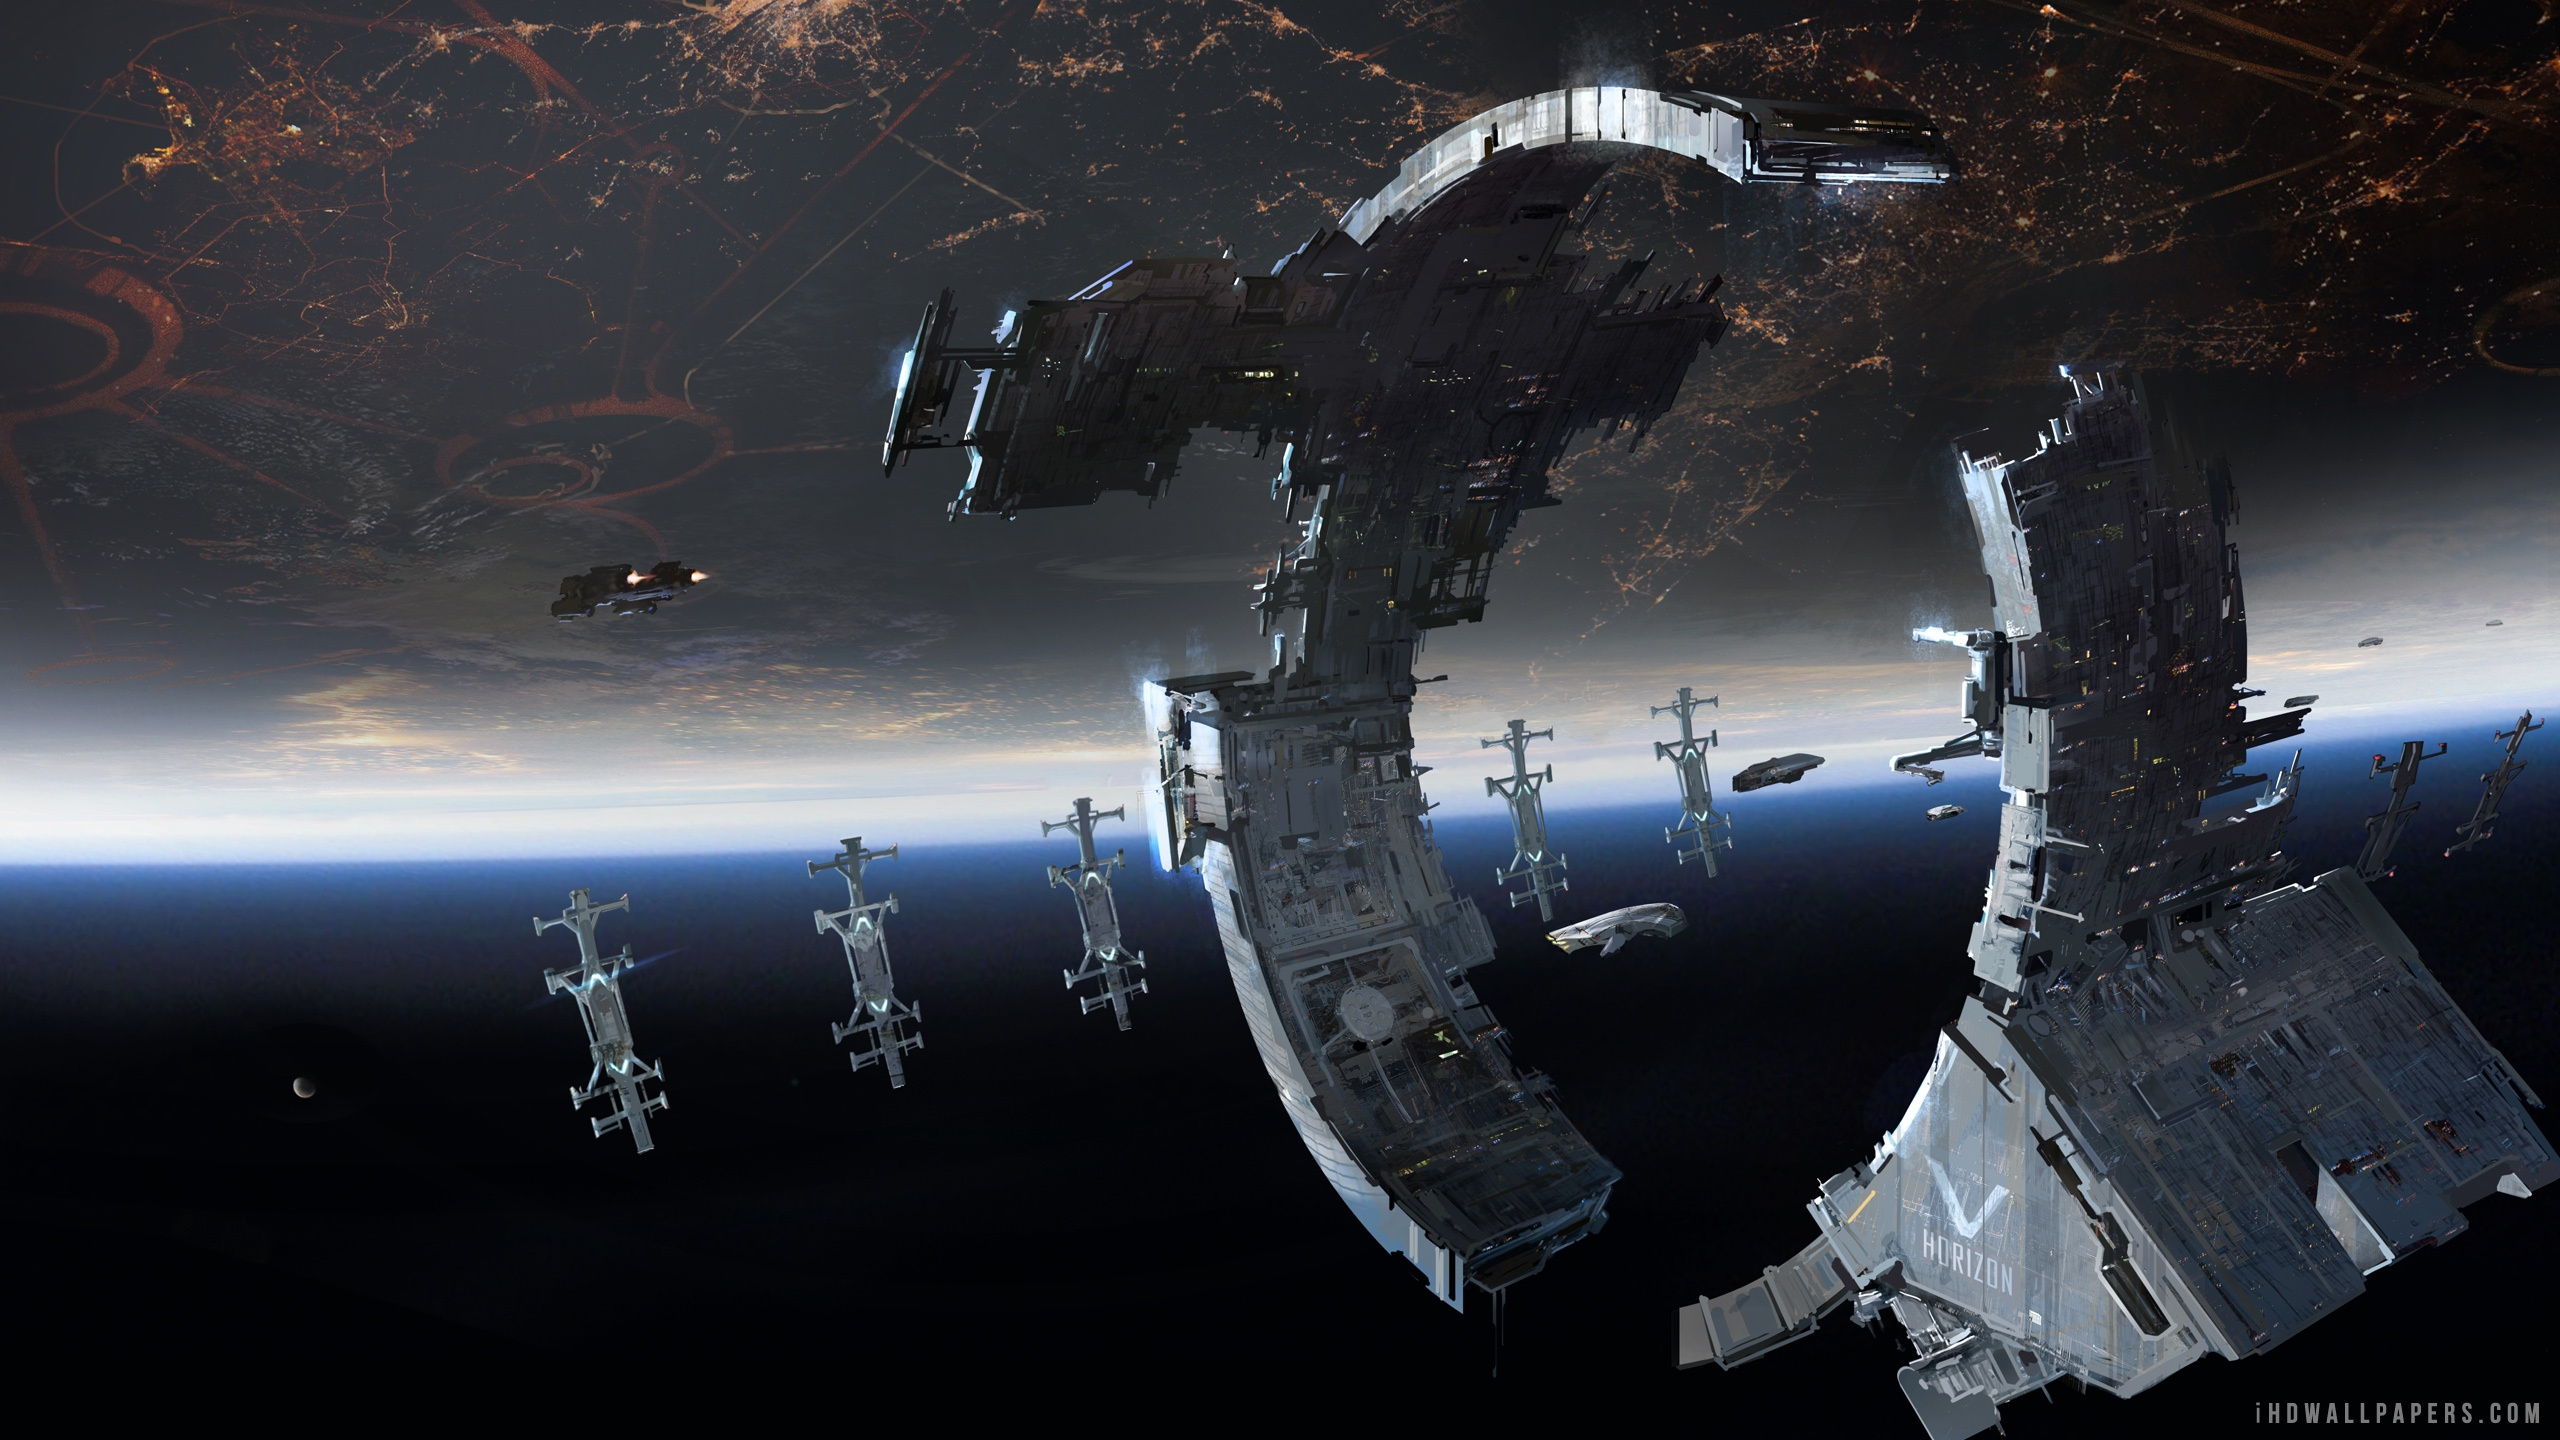 2560x1440 - Space Station Wallpapers 8